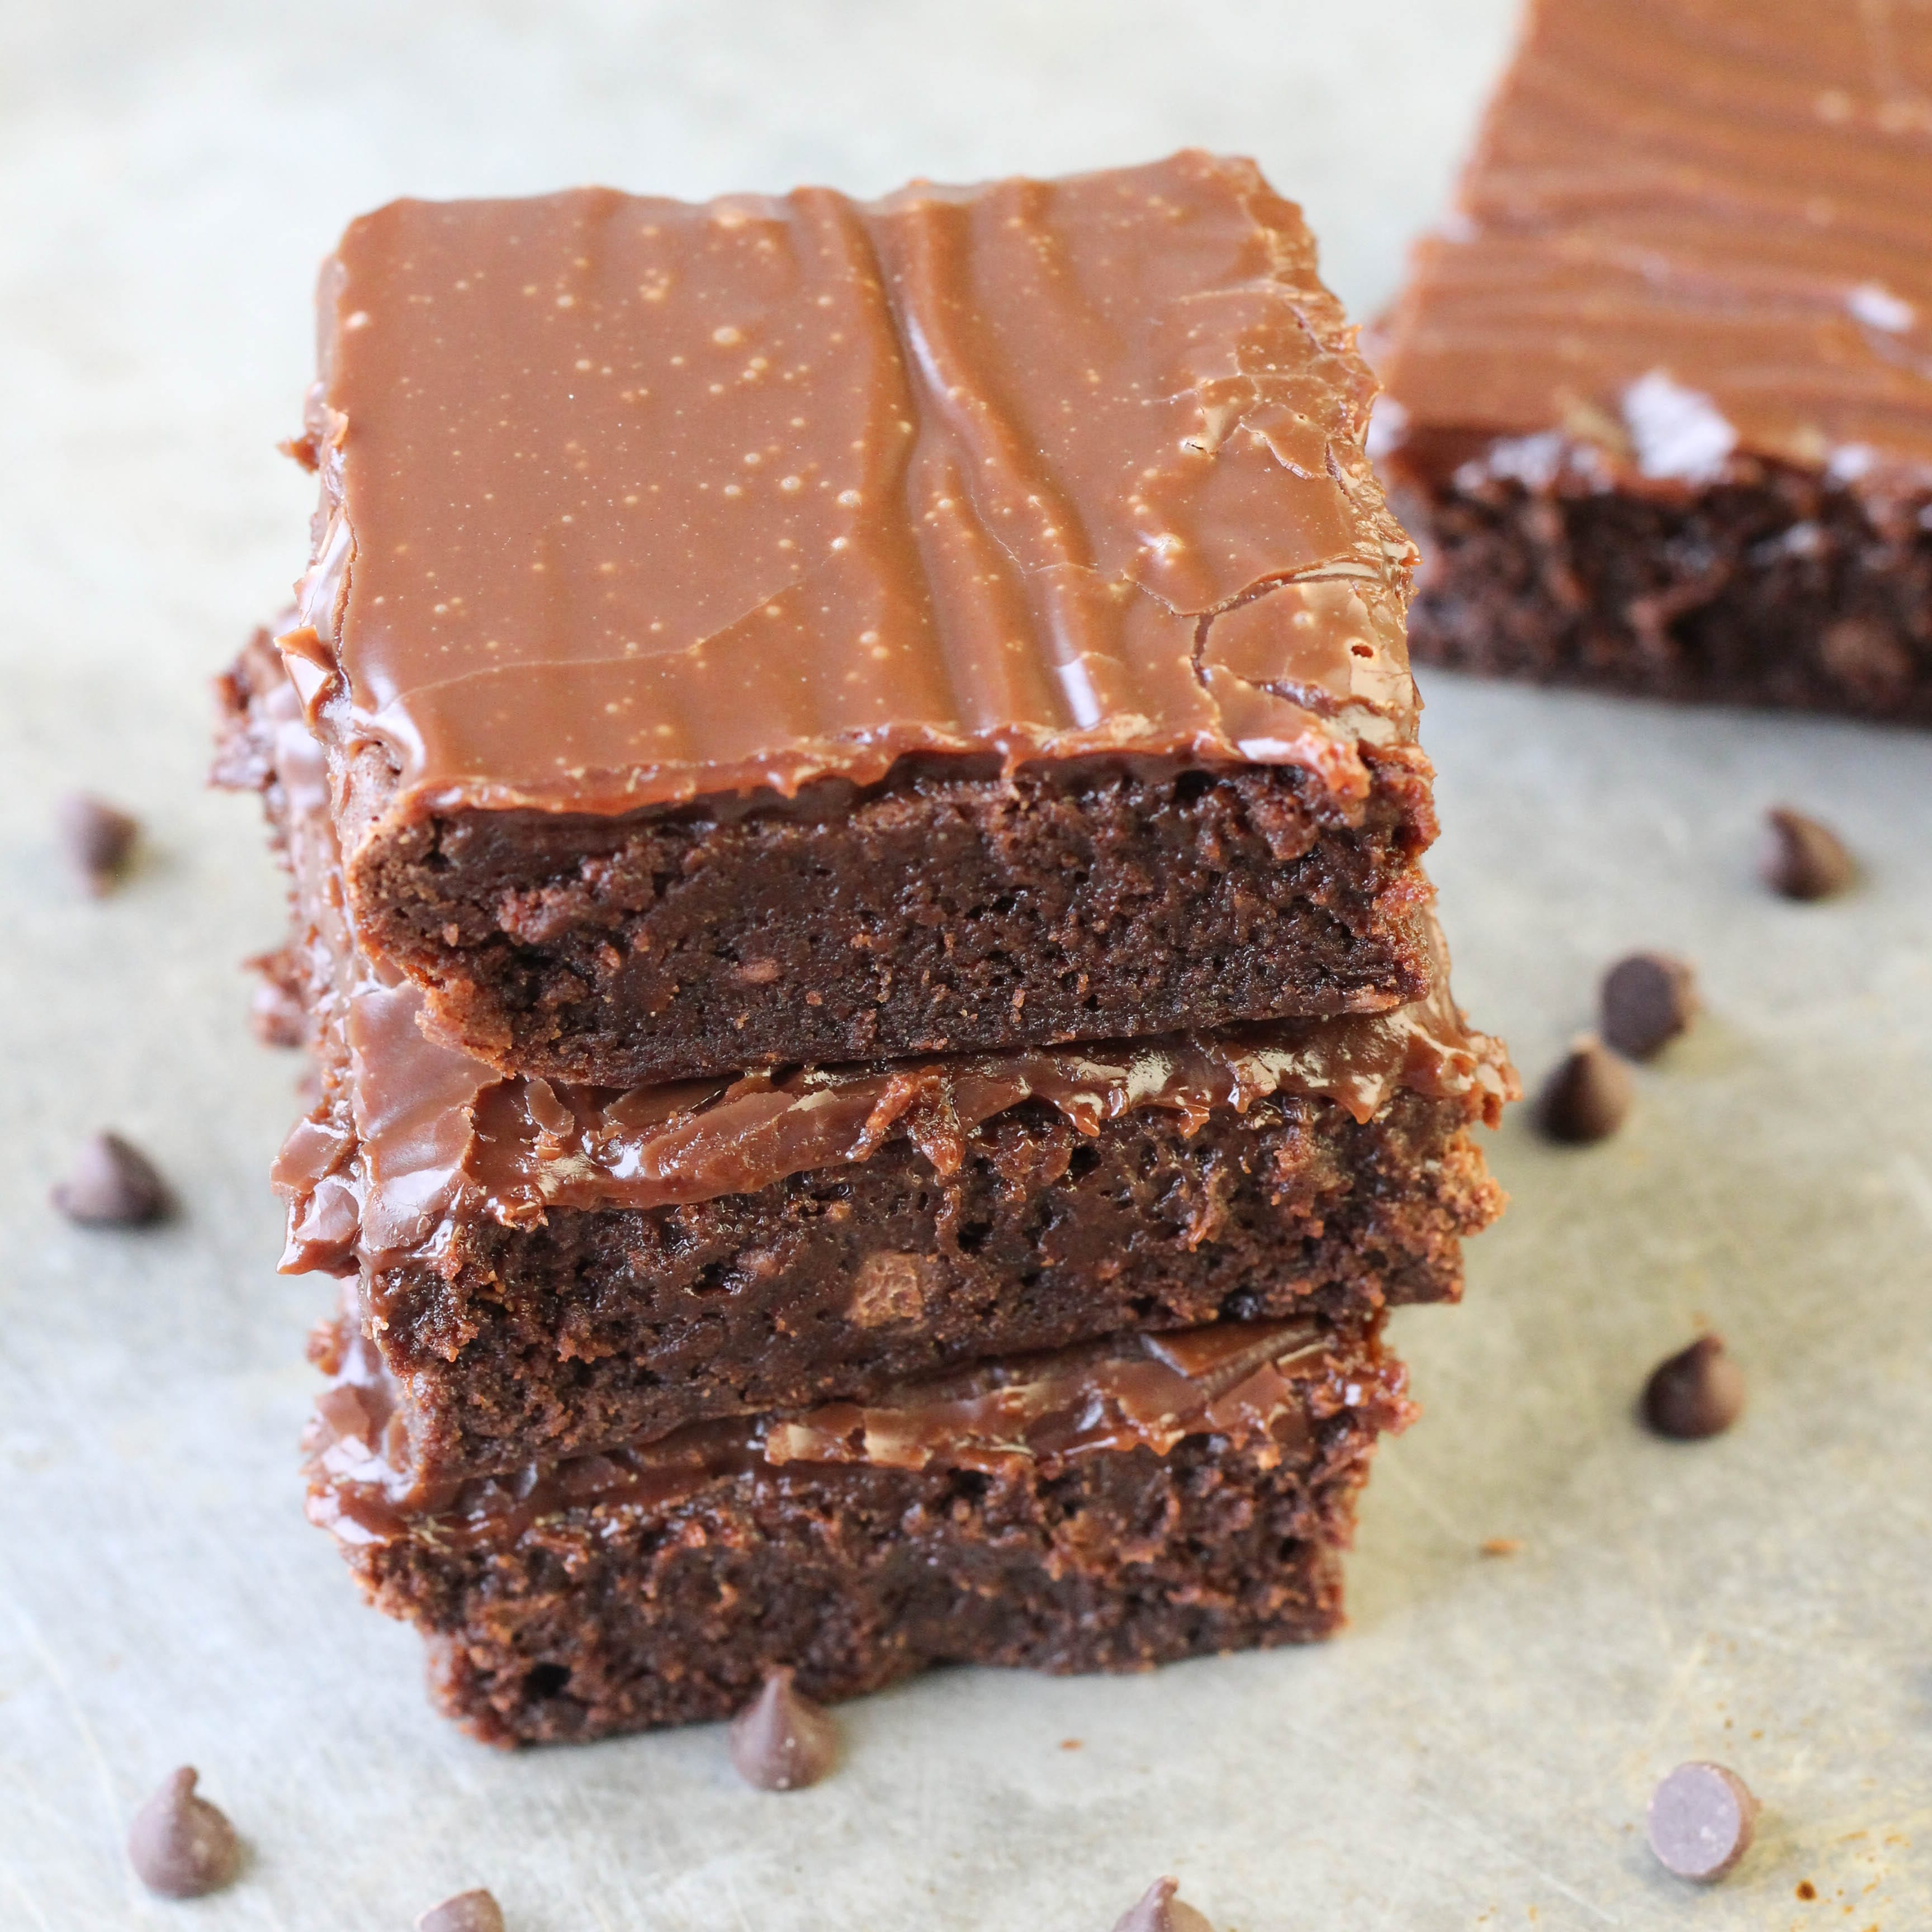 Calories In A Chocolate Brownie With Icing